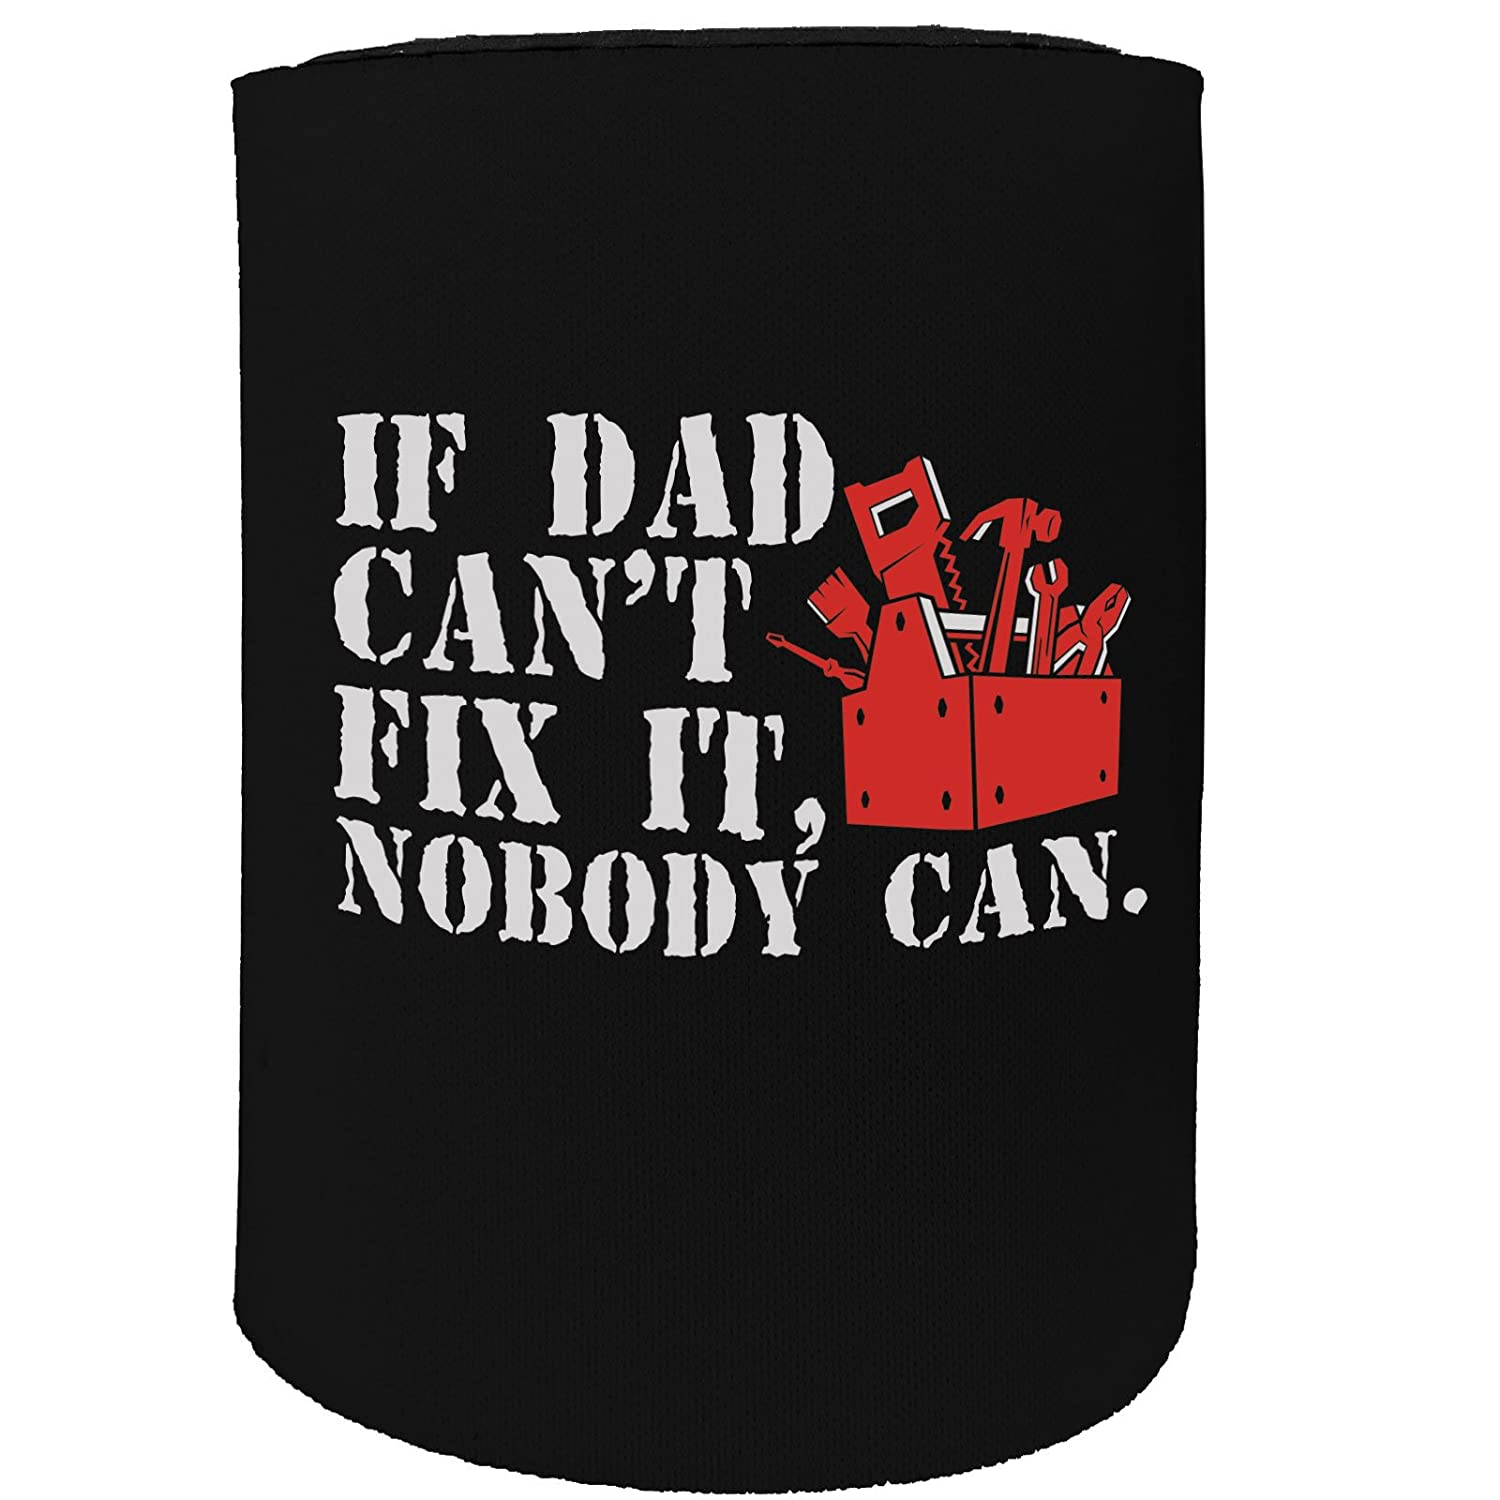 123t Stubby Holder - If Dad Cant Fix It Nobody Can - Funny Novelty Birthday Gift Joke Beer Can Bottle Coolie Koozie Stubbie